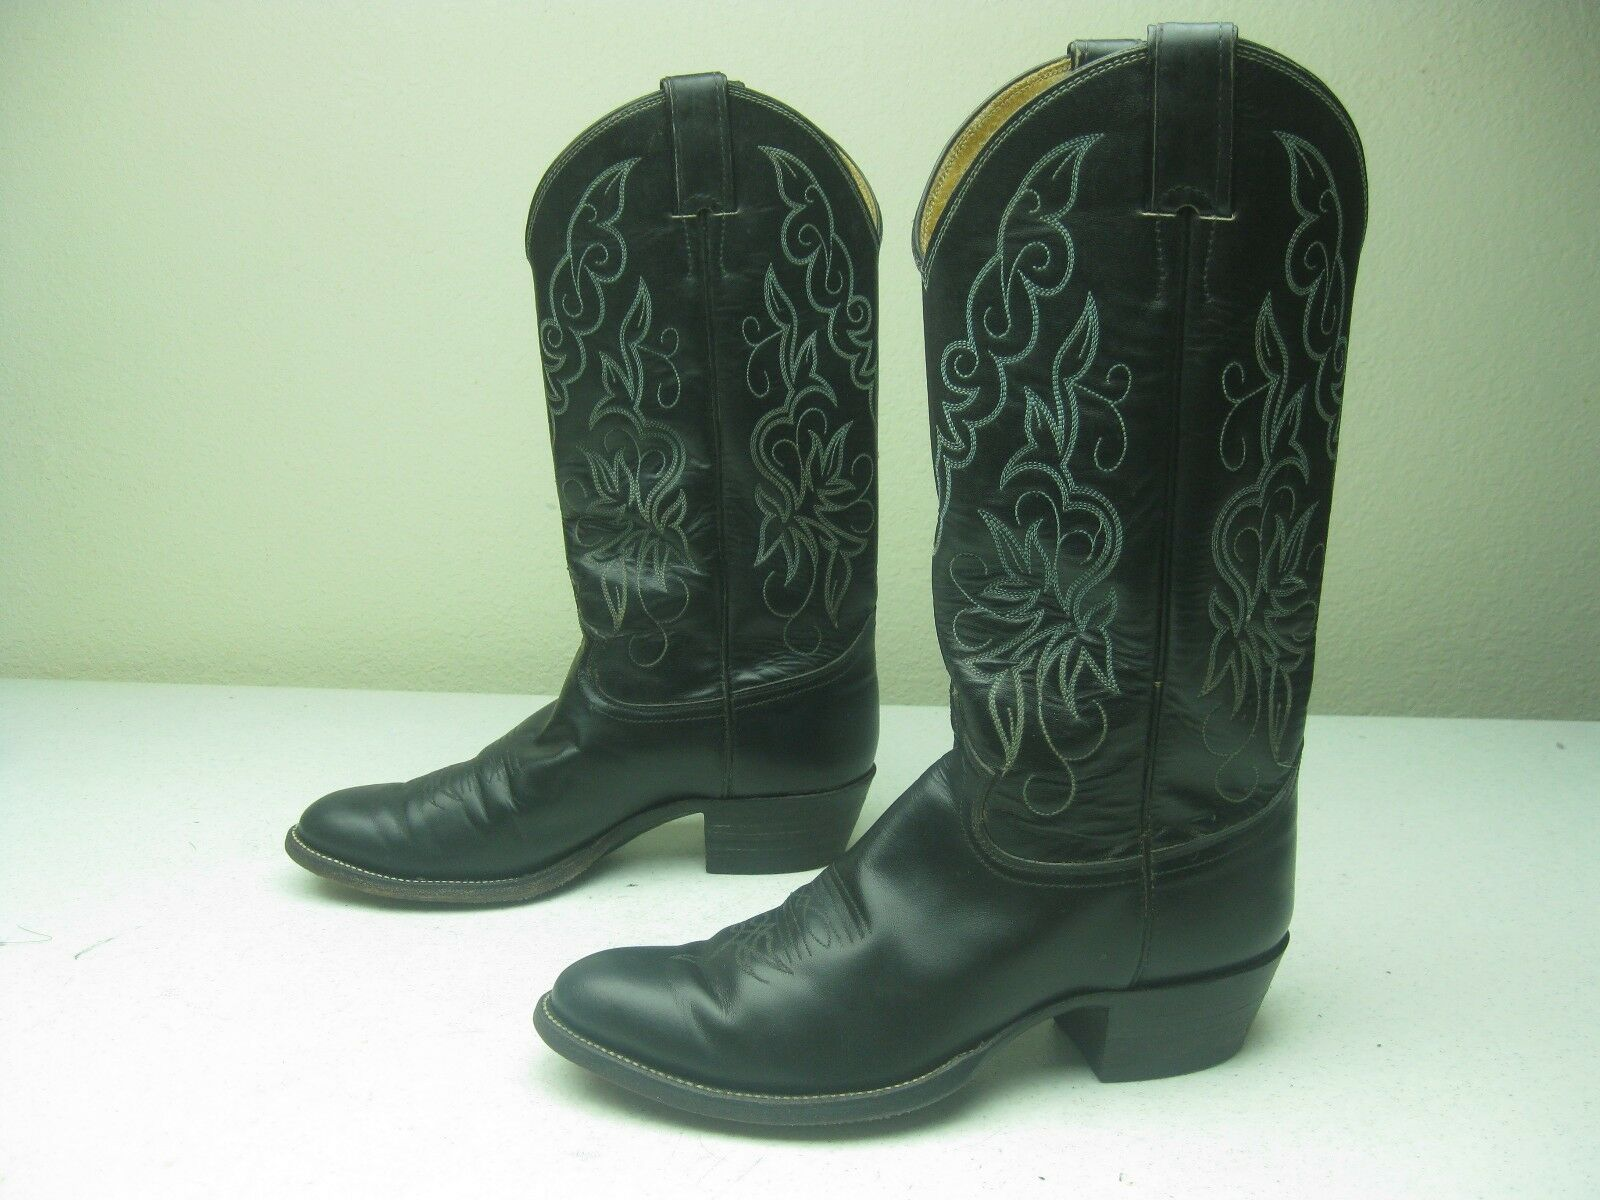 JUSTIN STYLE 5408 COUNTRY WESTERN  BLACK COWBOY BOOTS 8 D MADE IN USA